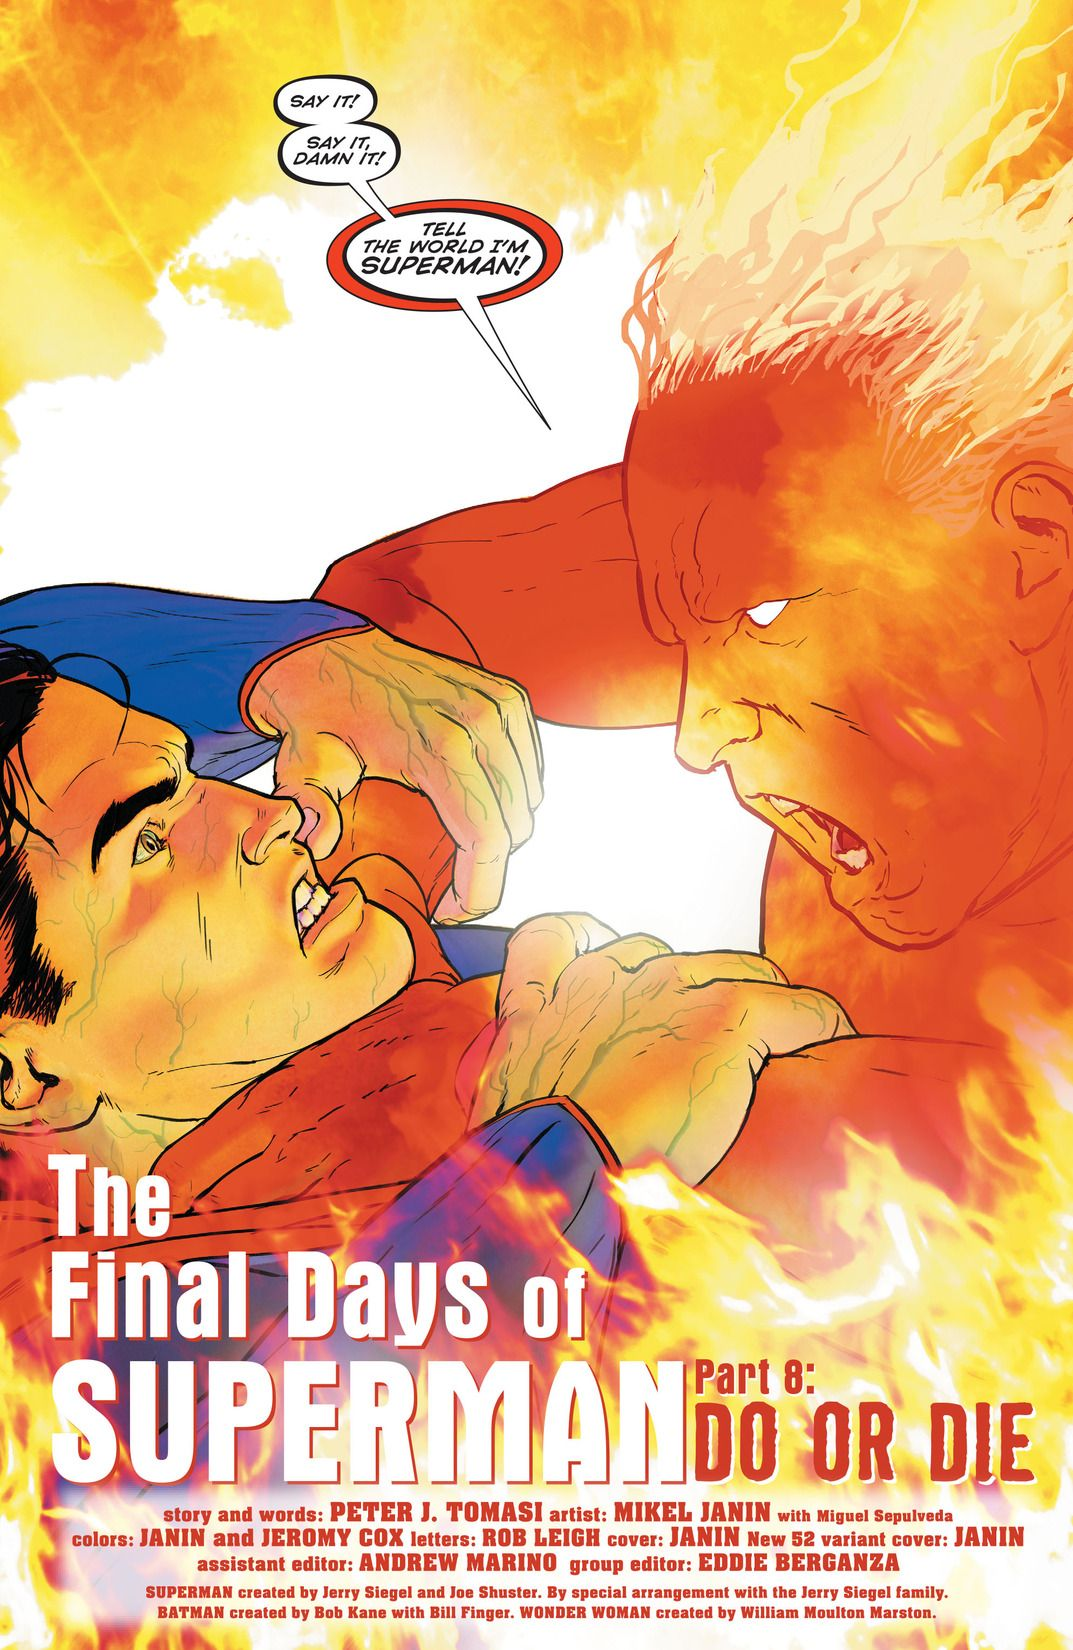 The Final Days of Superman Review